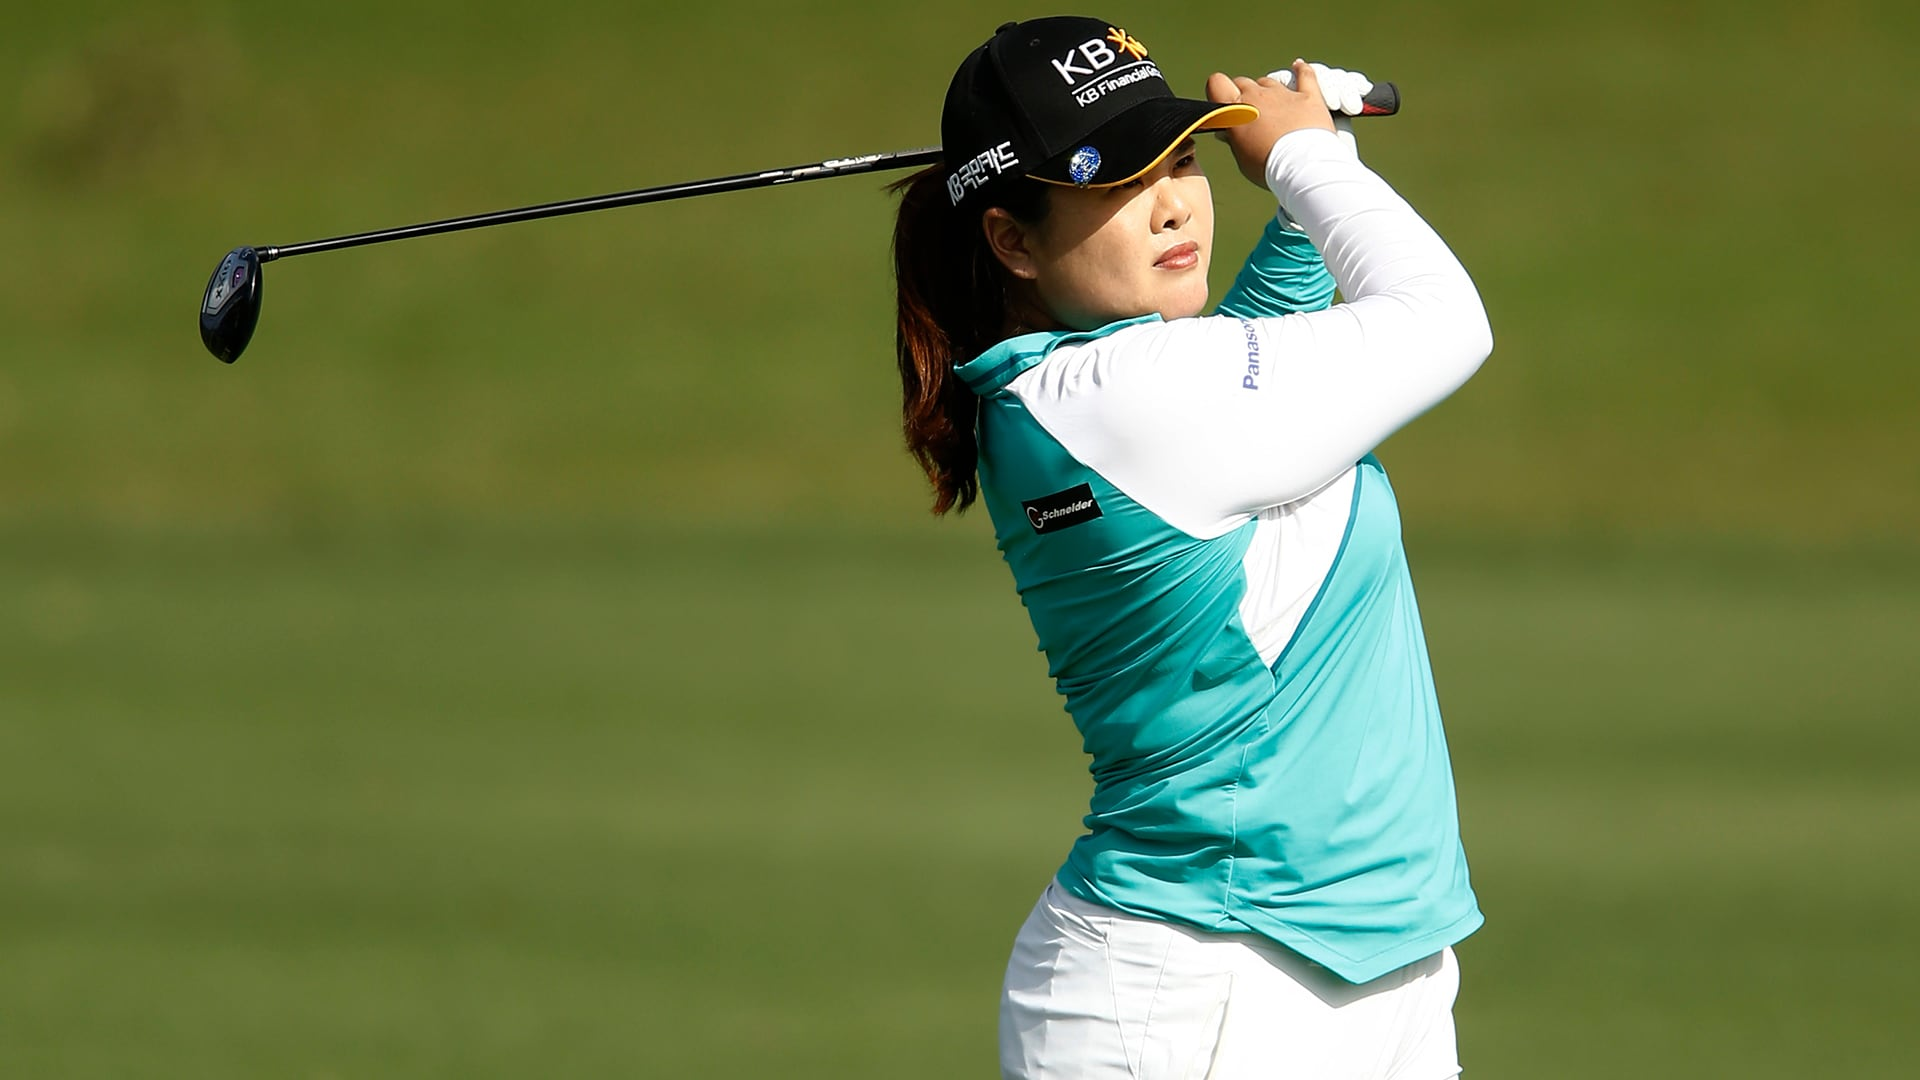 LPGA to resume play with 2 tournaments in Ohio starting